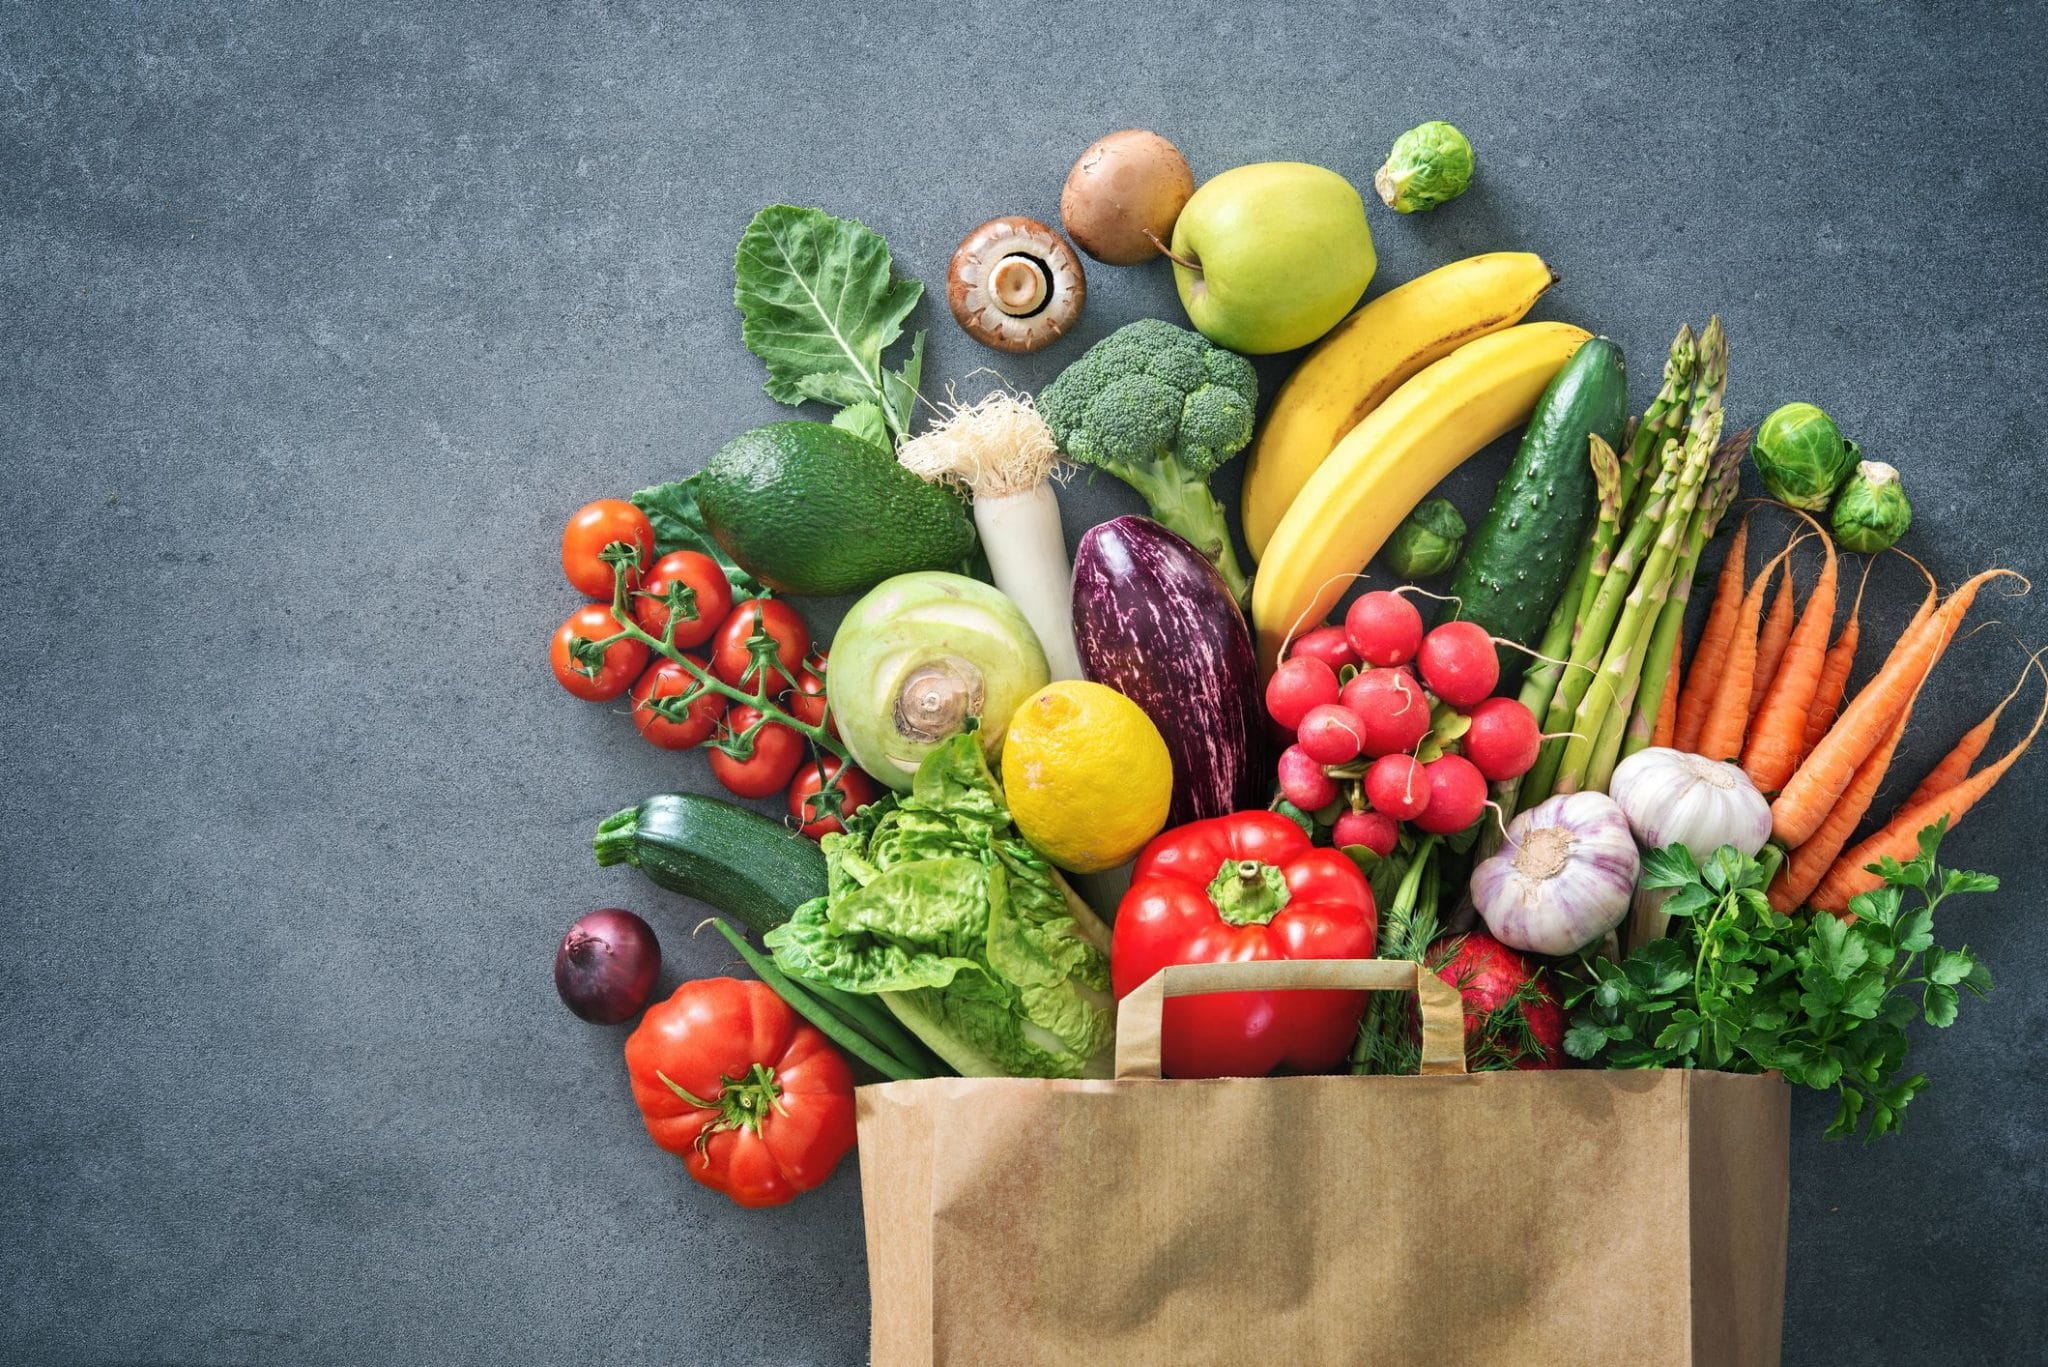 Eating vegetables will help you lose weight